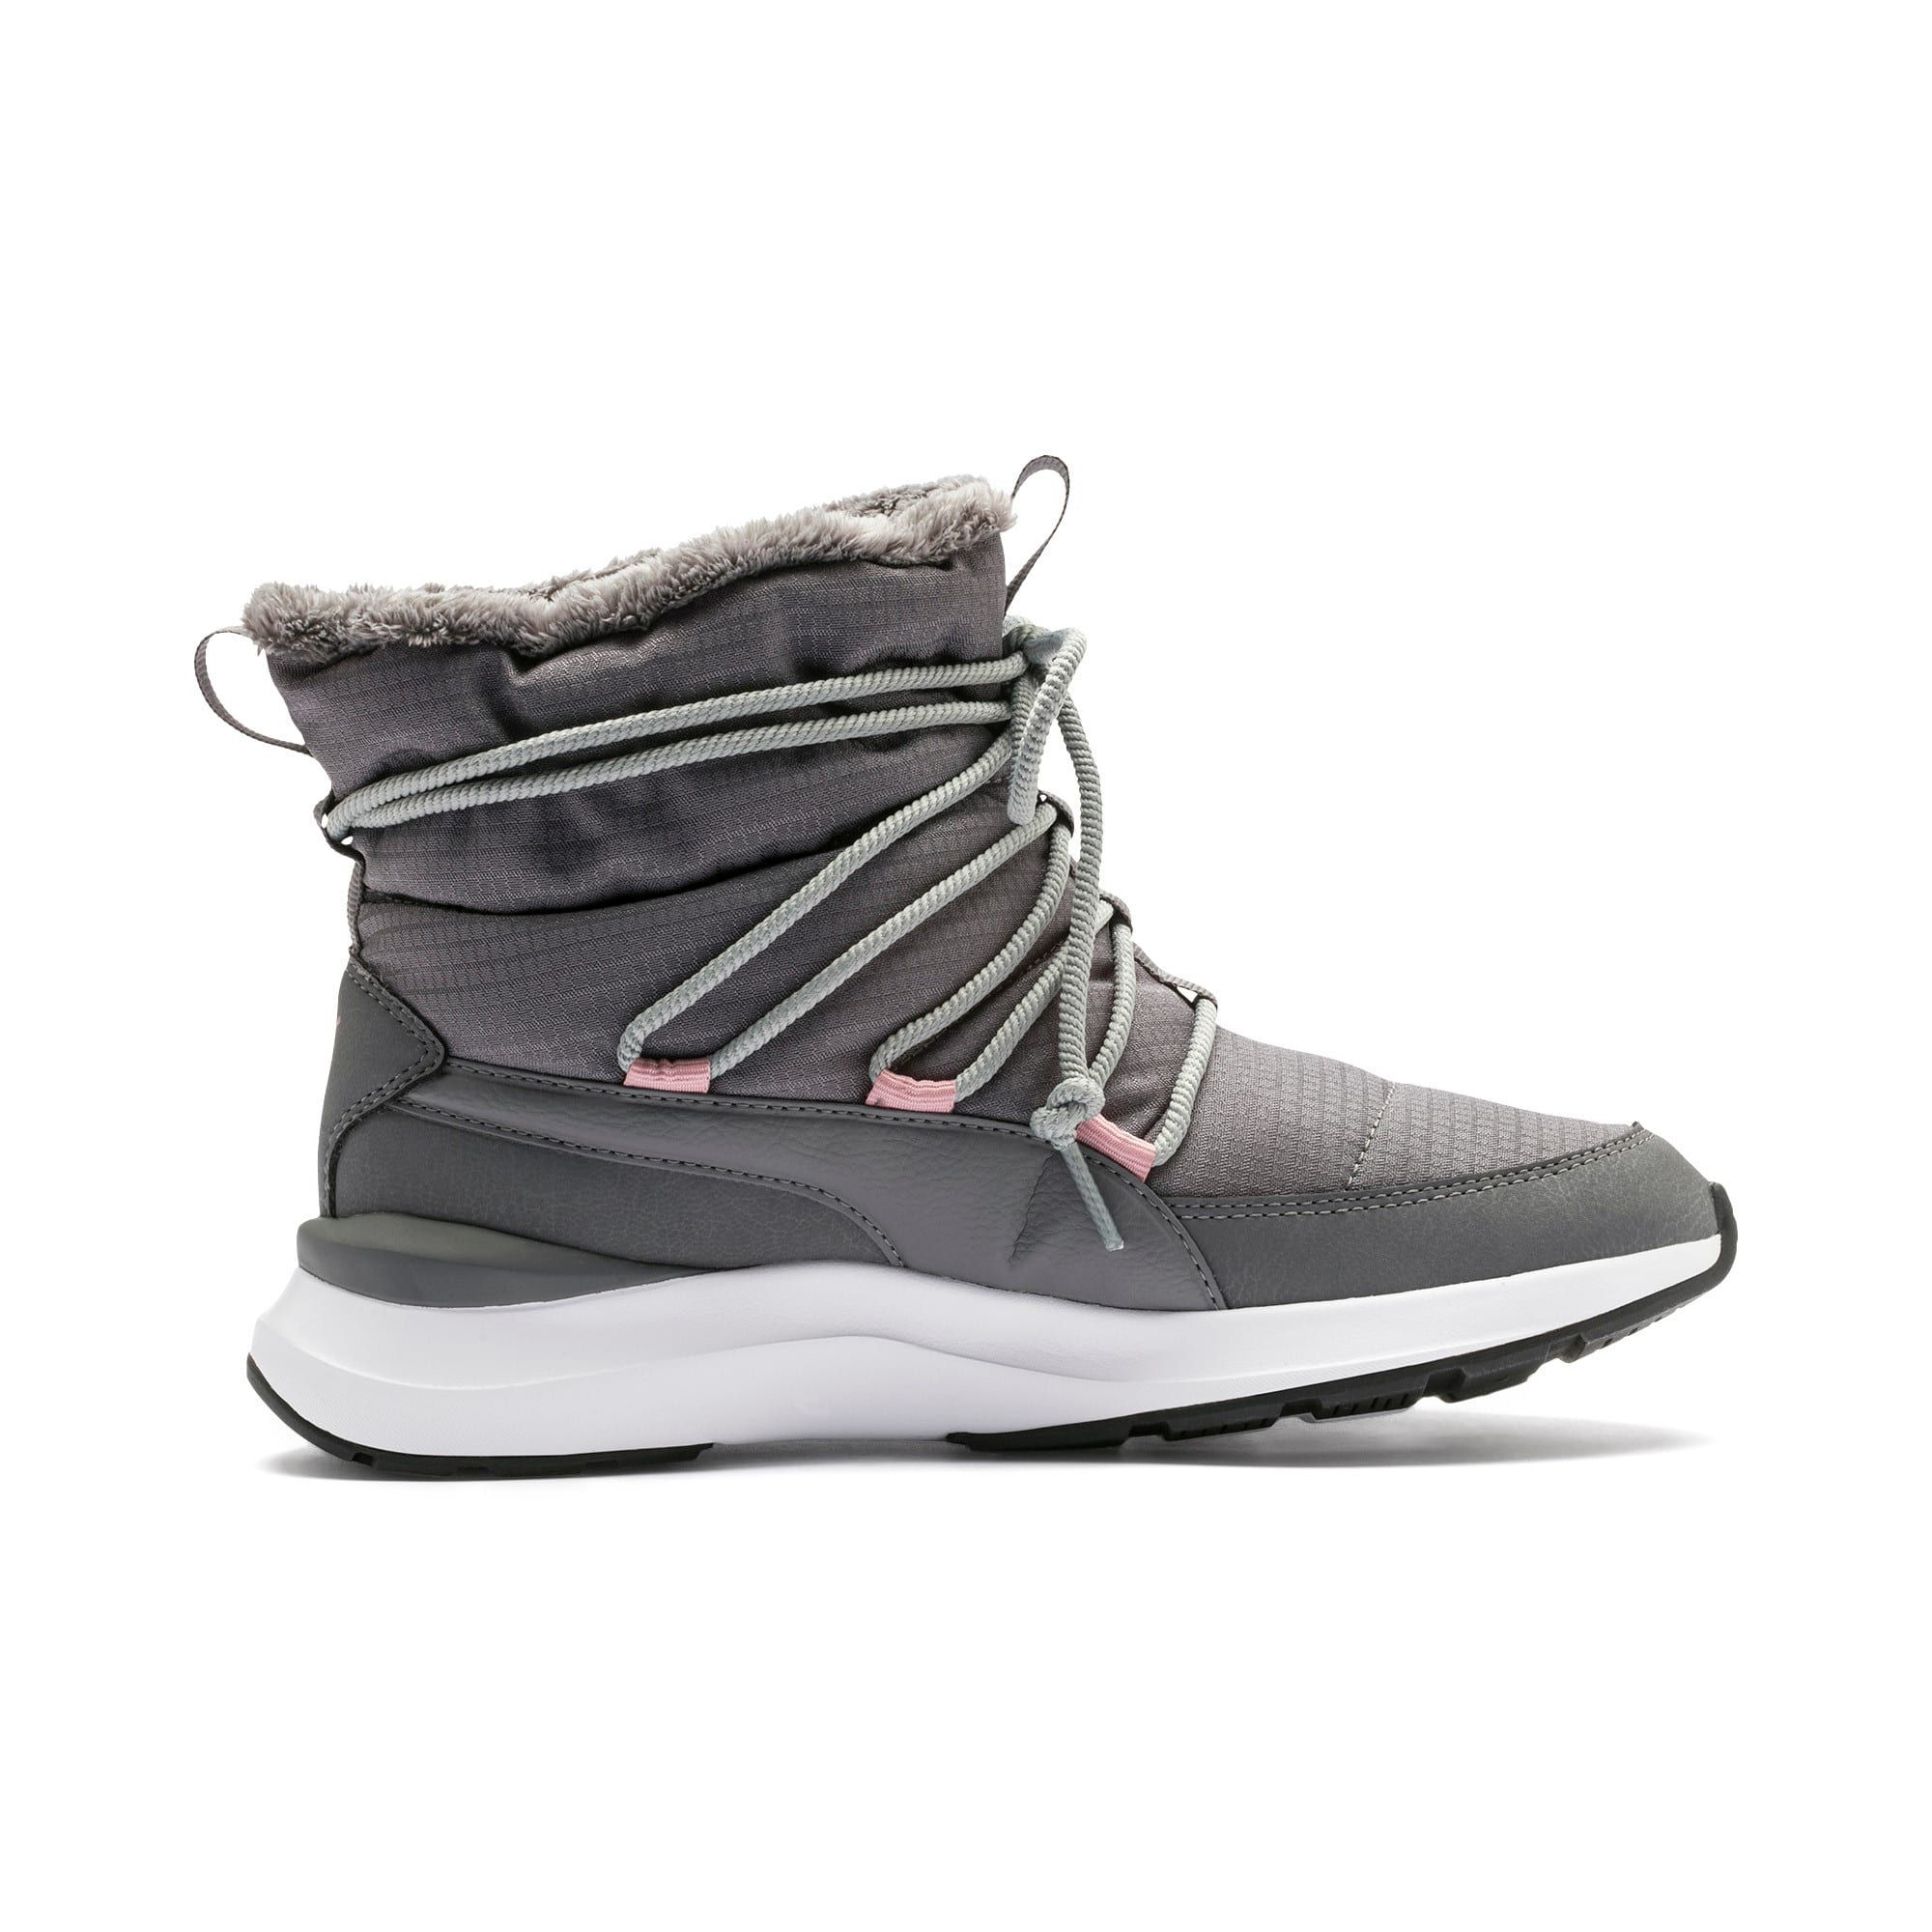 PUMA Adela Winter Boots in Steel GreyWhite size 6.5